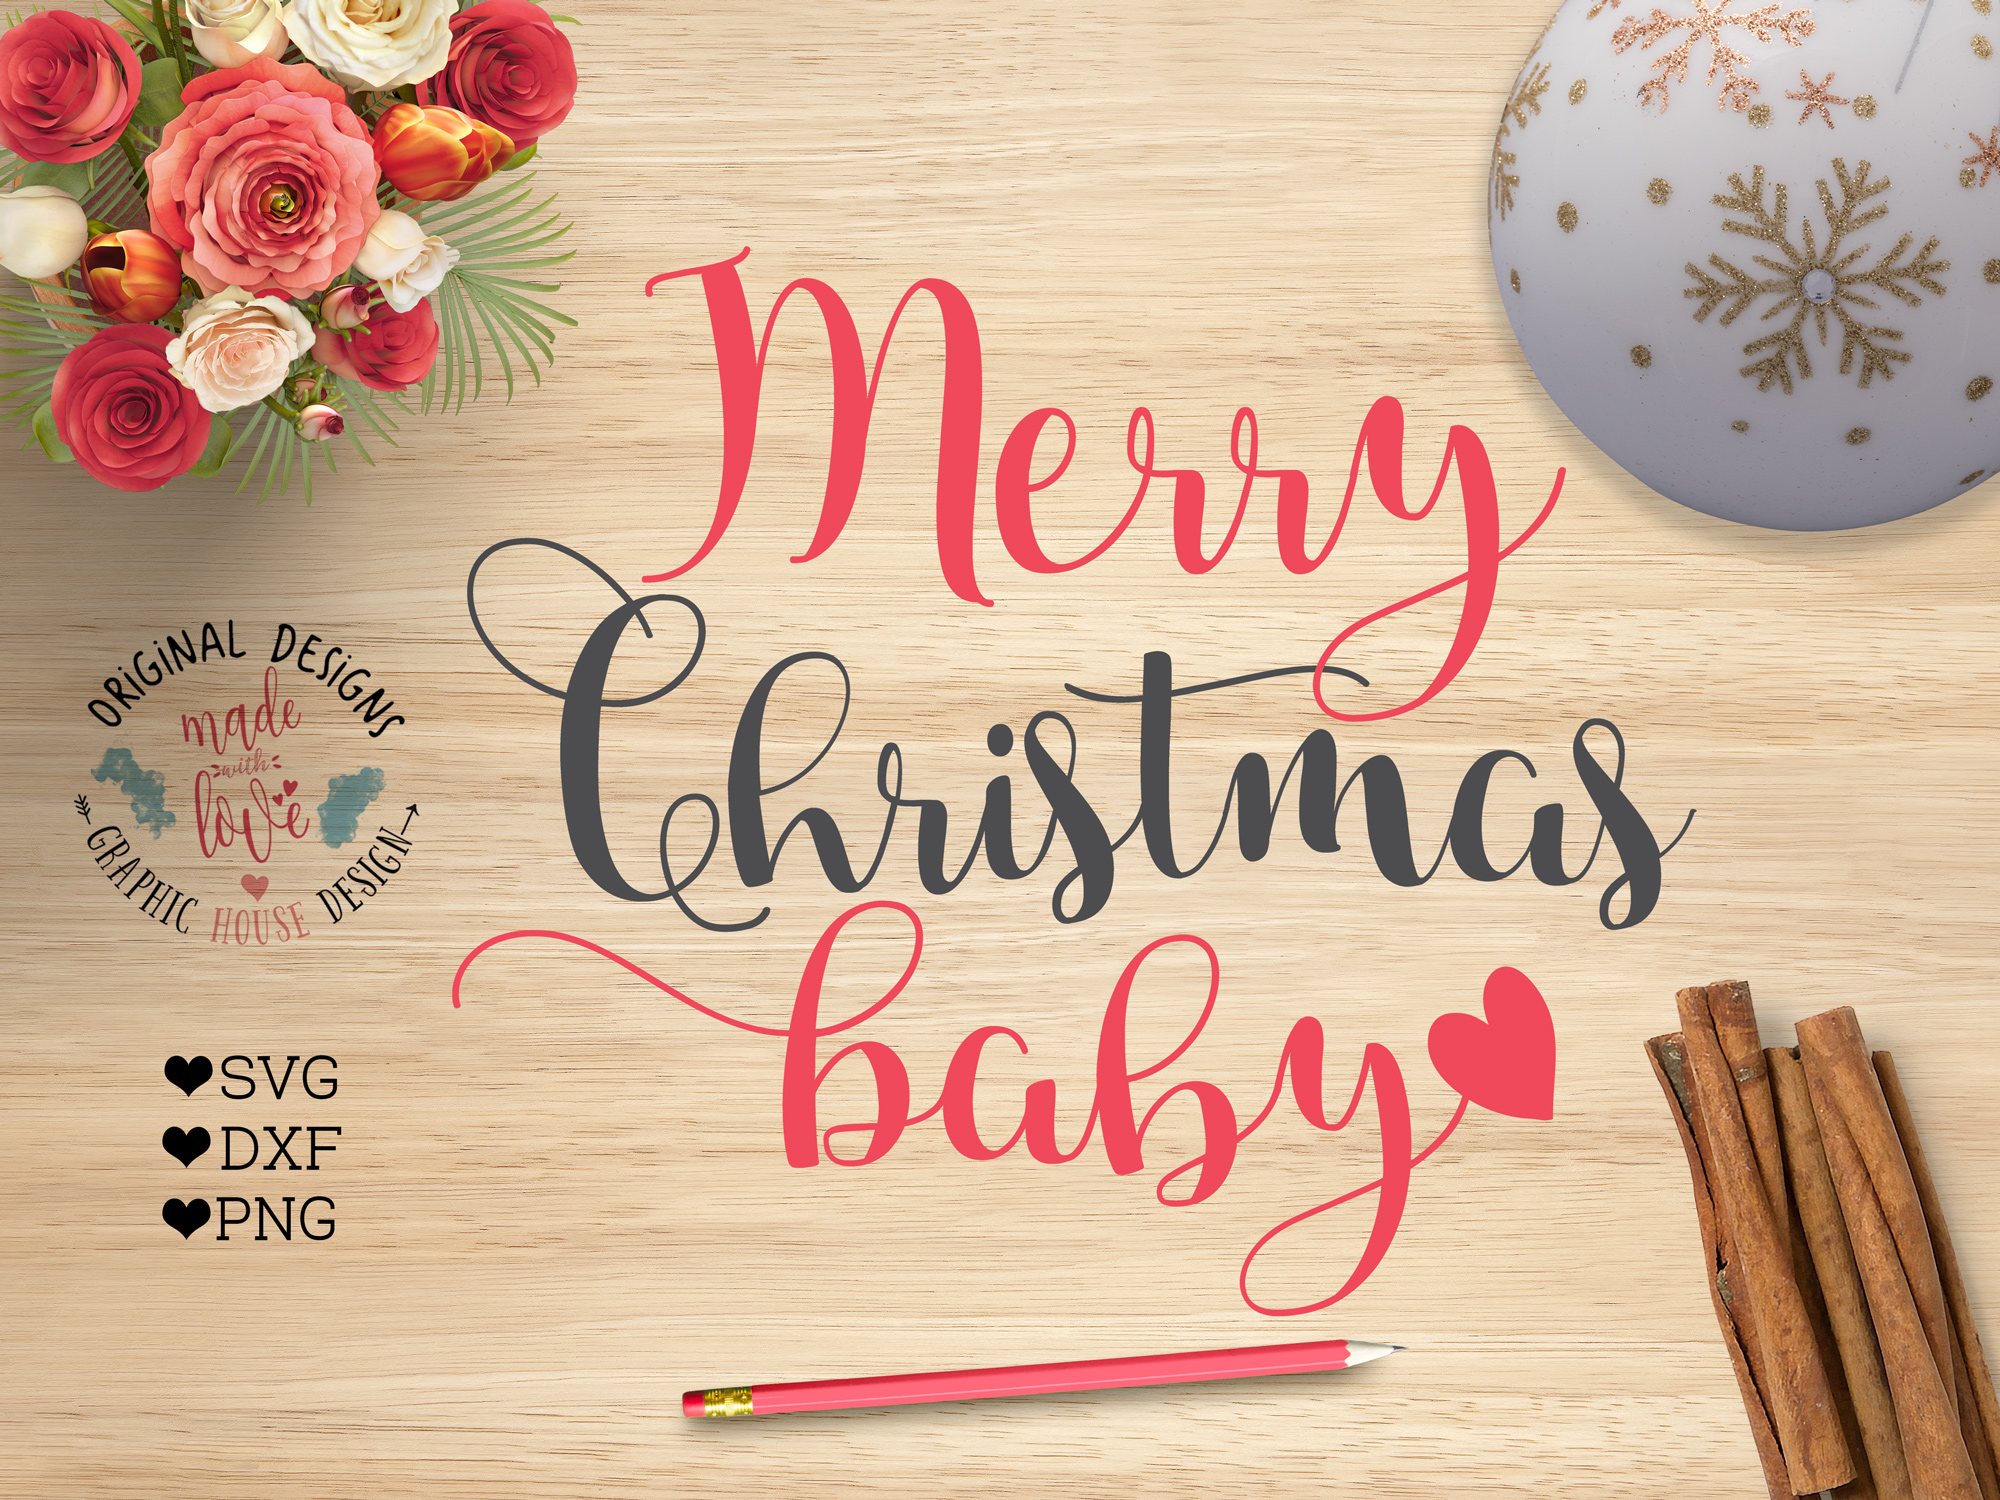 merry christmas baby cut files svg dxf png example image 1